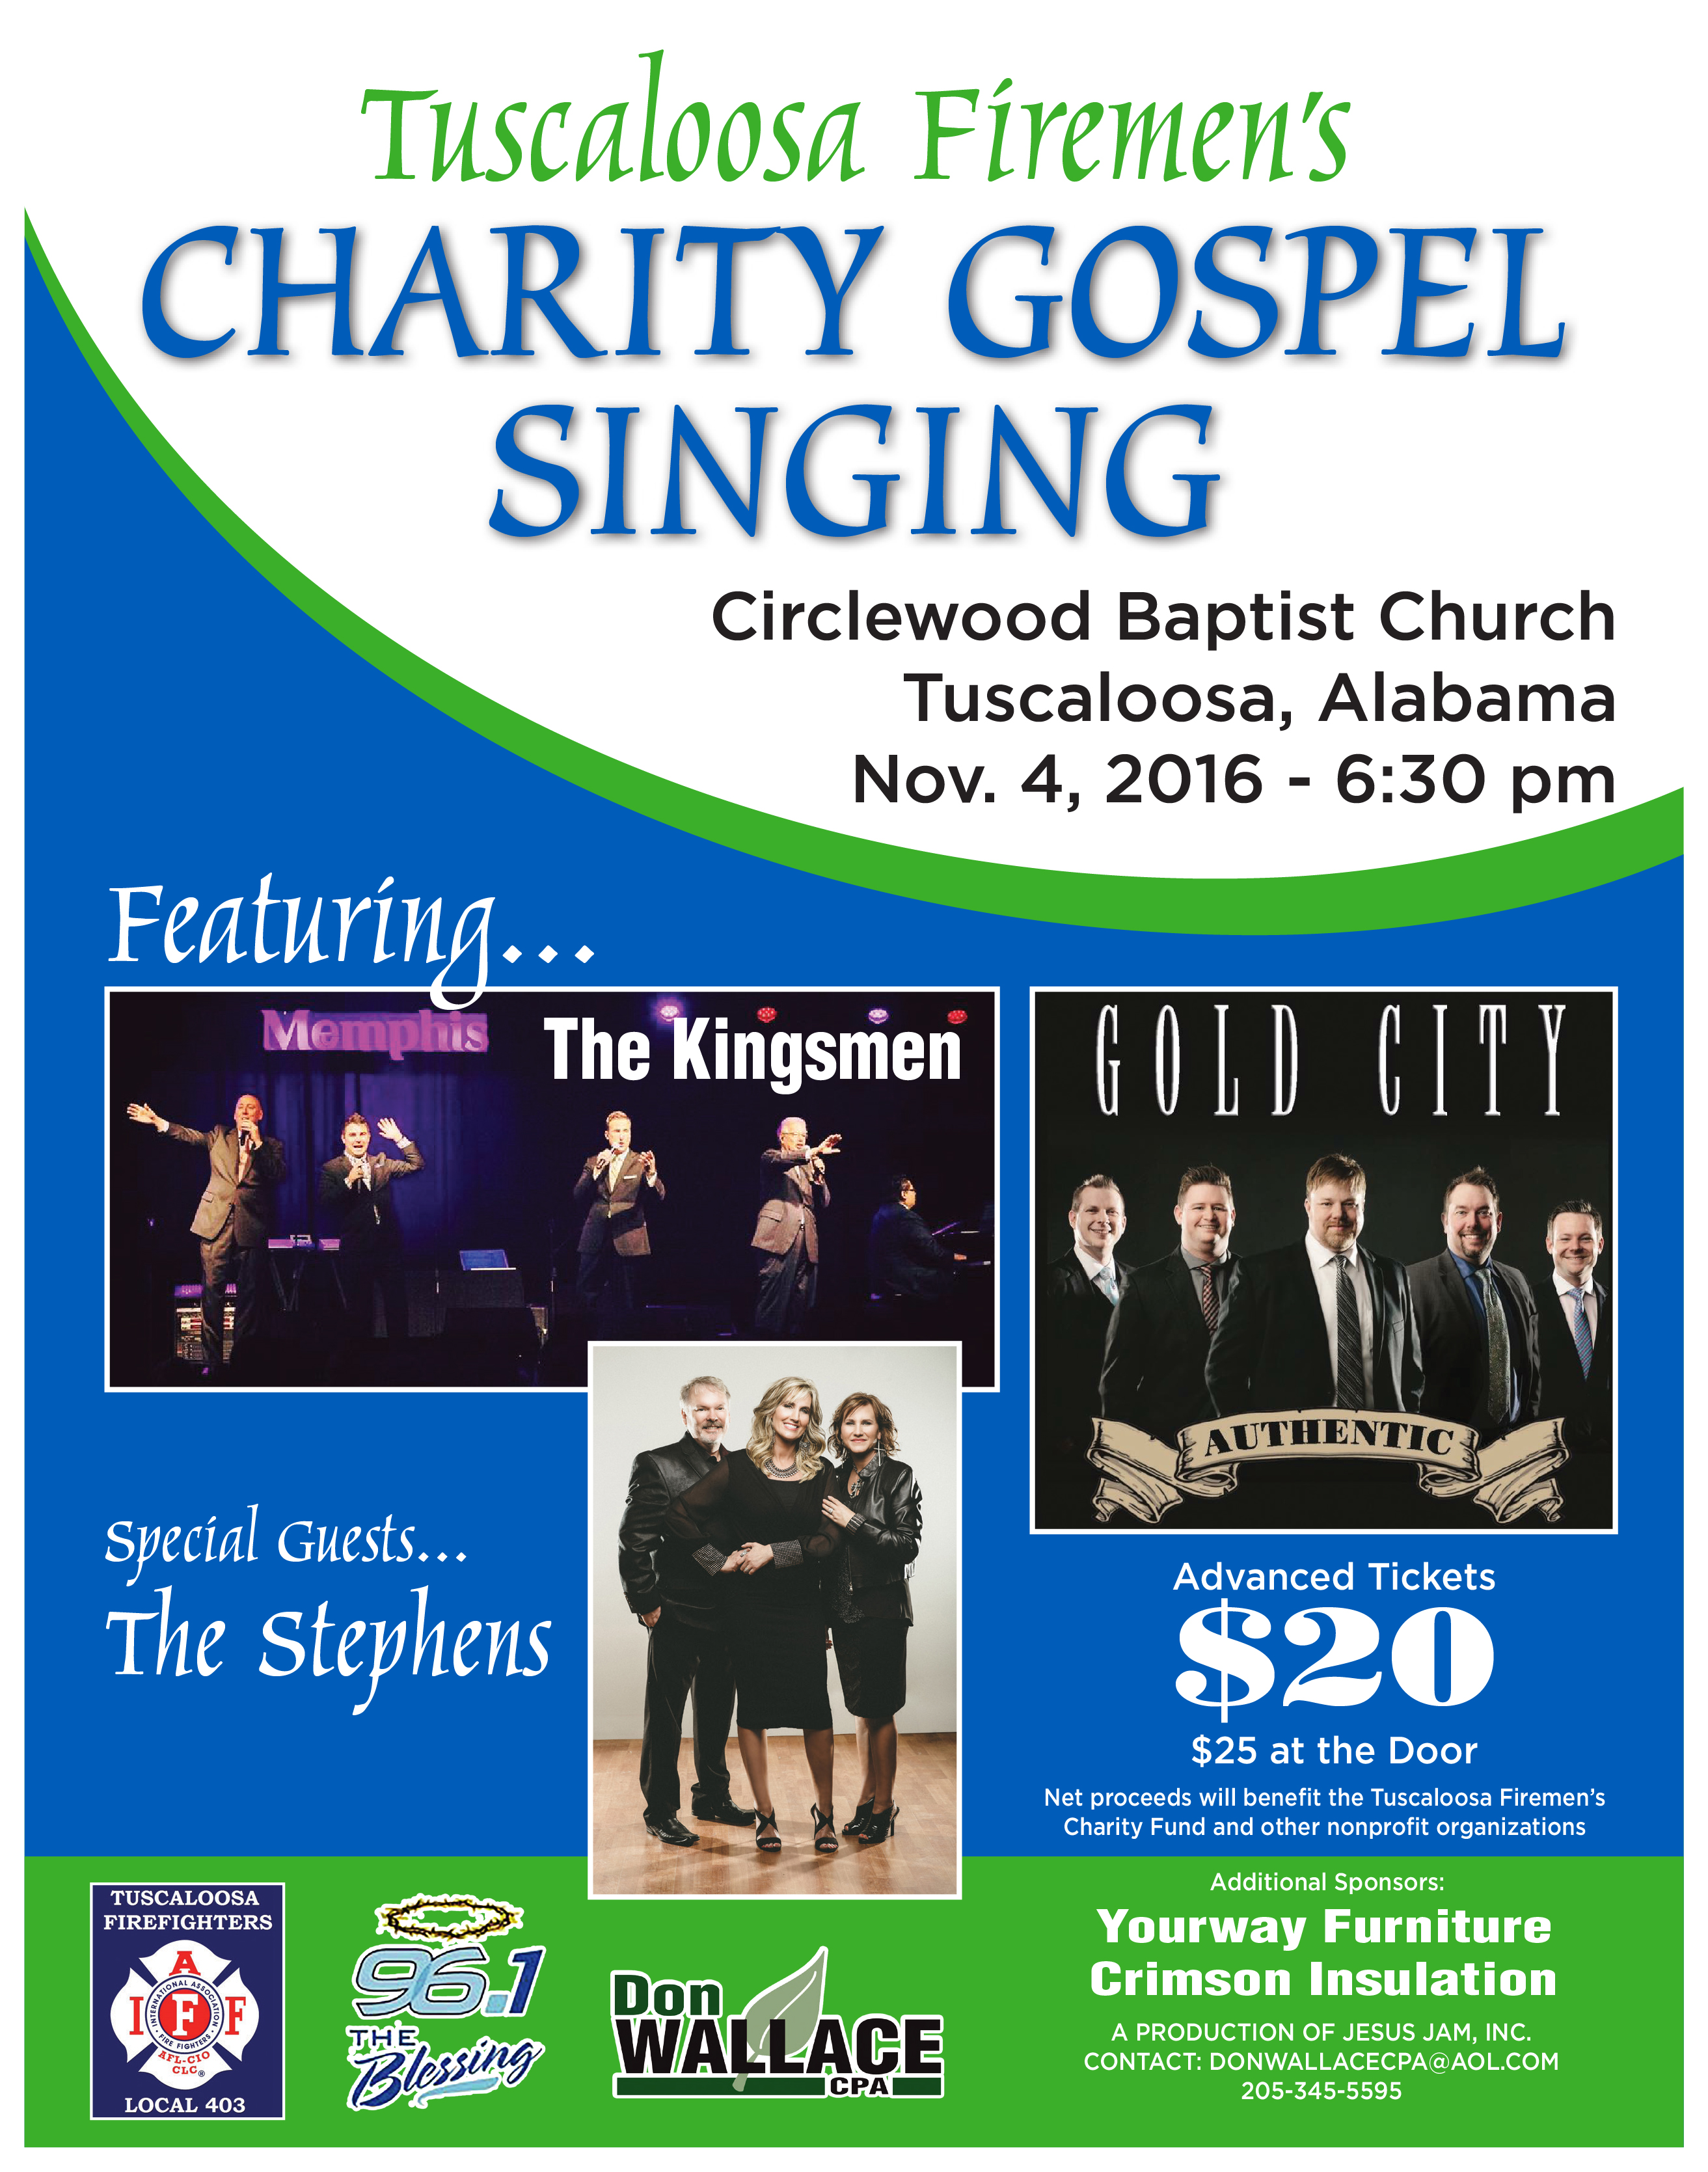 TUSCALOOSA FIREMEN'S CHARITY GOSPEL SINGING